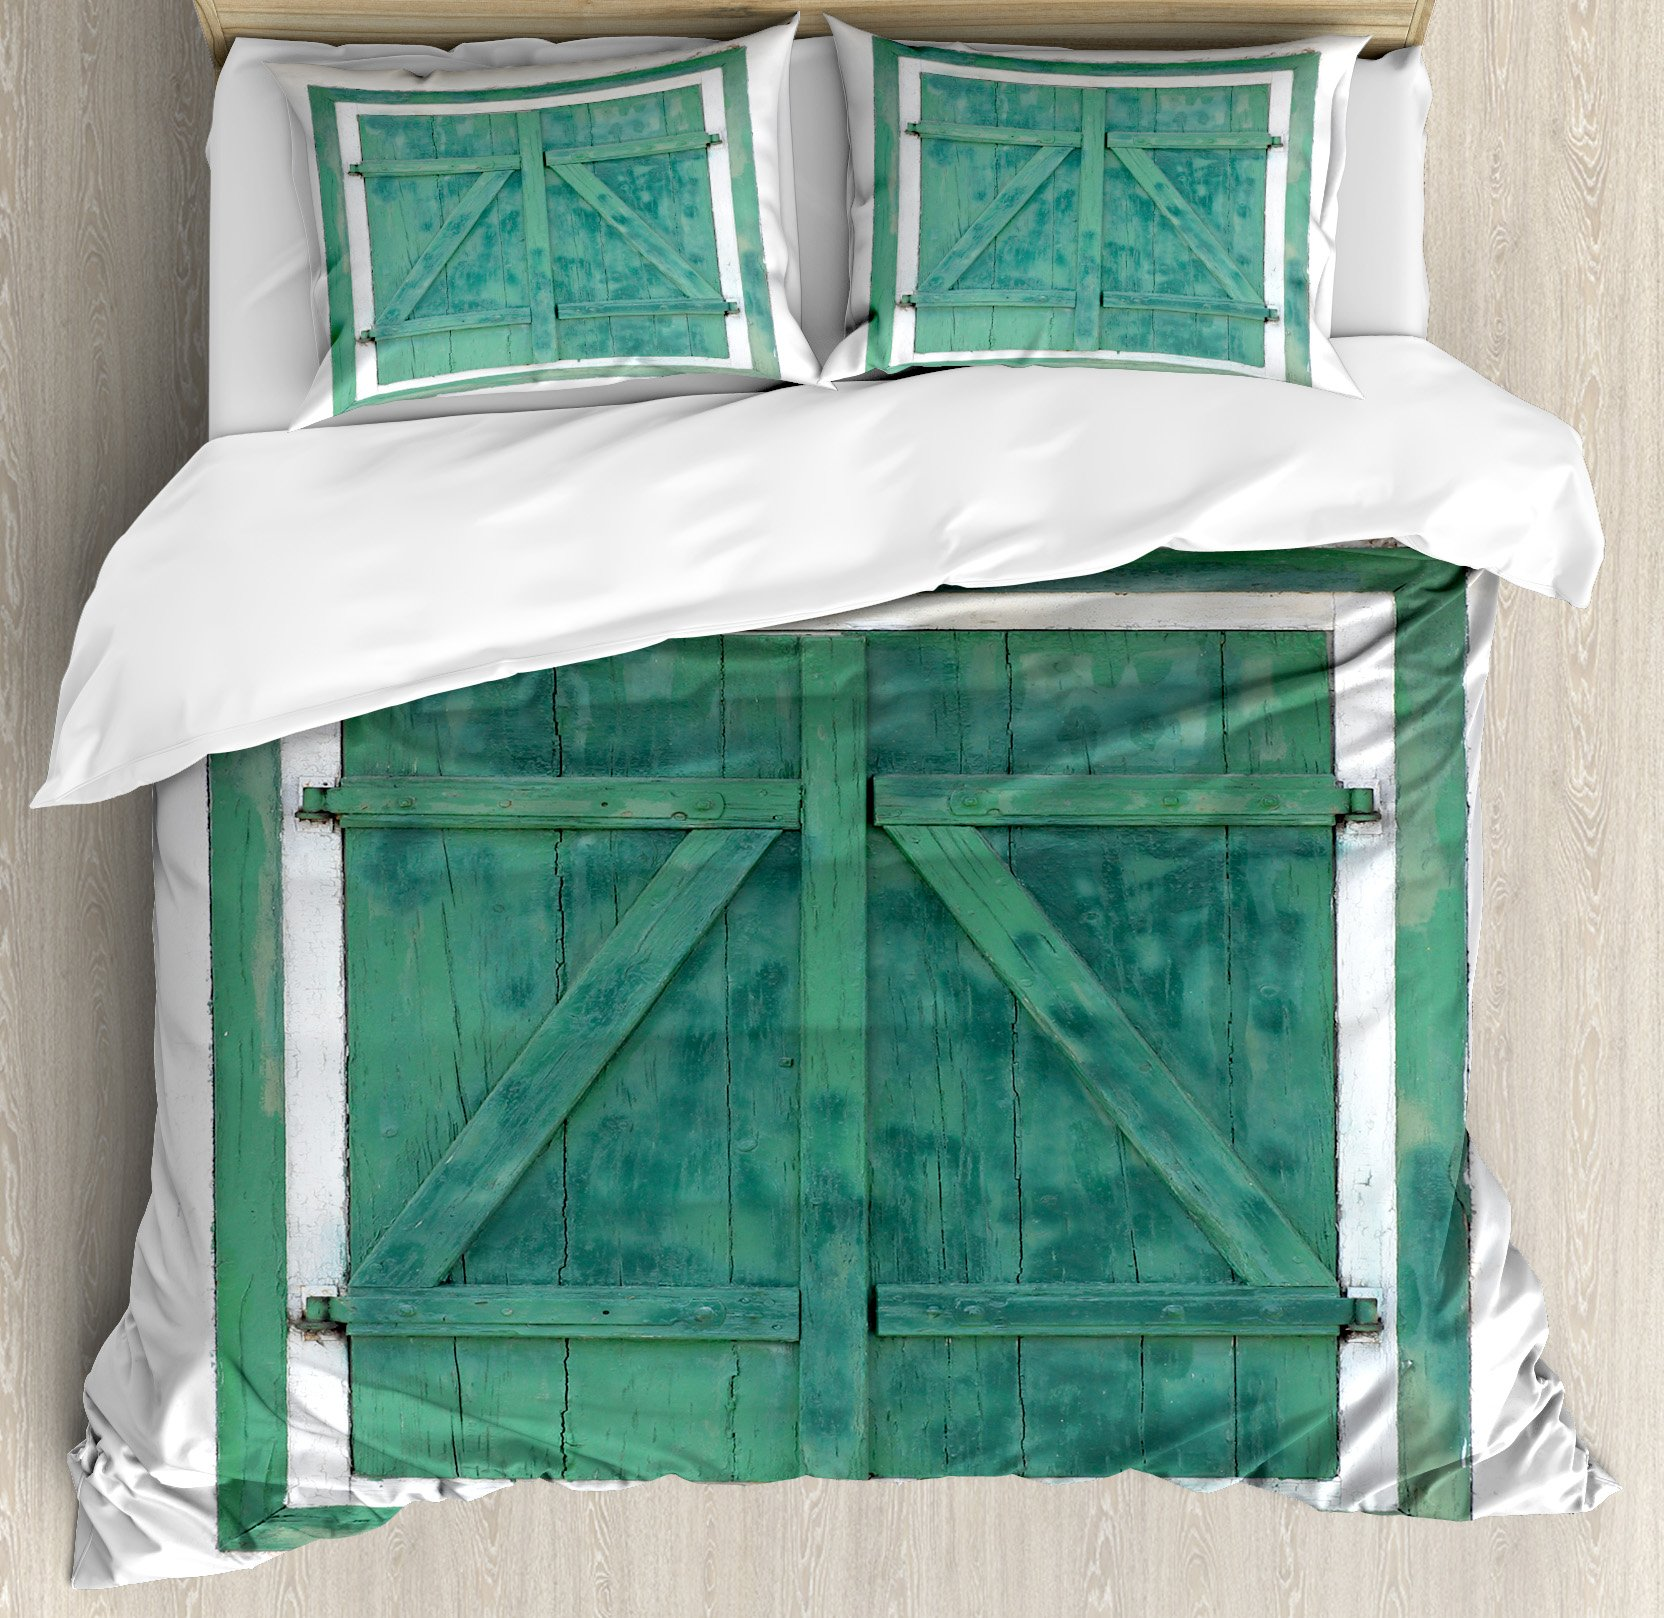 Ambesonne Country Duvet Cover Set King Size, Retro Wooden Window and Shutters Image Traditional Farm Cottage Home Boho Print, Decorative 3 Piece Bedding Set with 2 Pillow Shams, Teal Grey